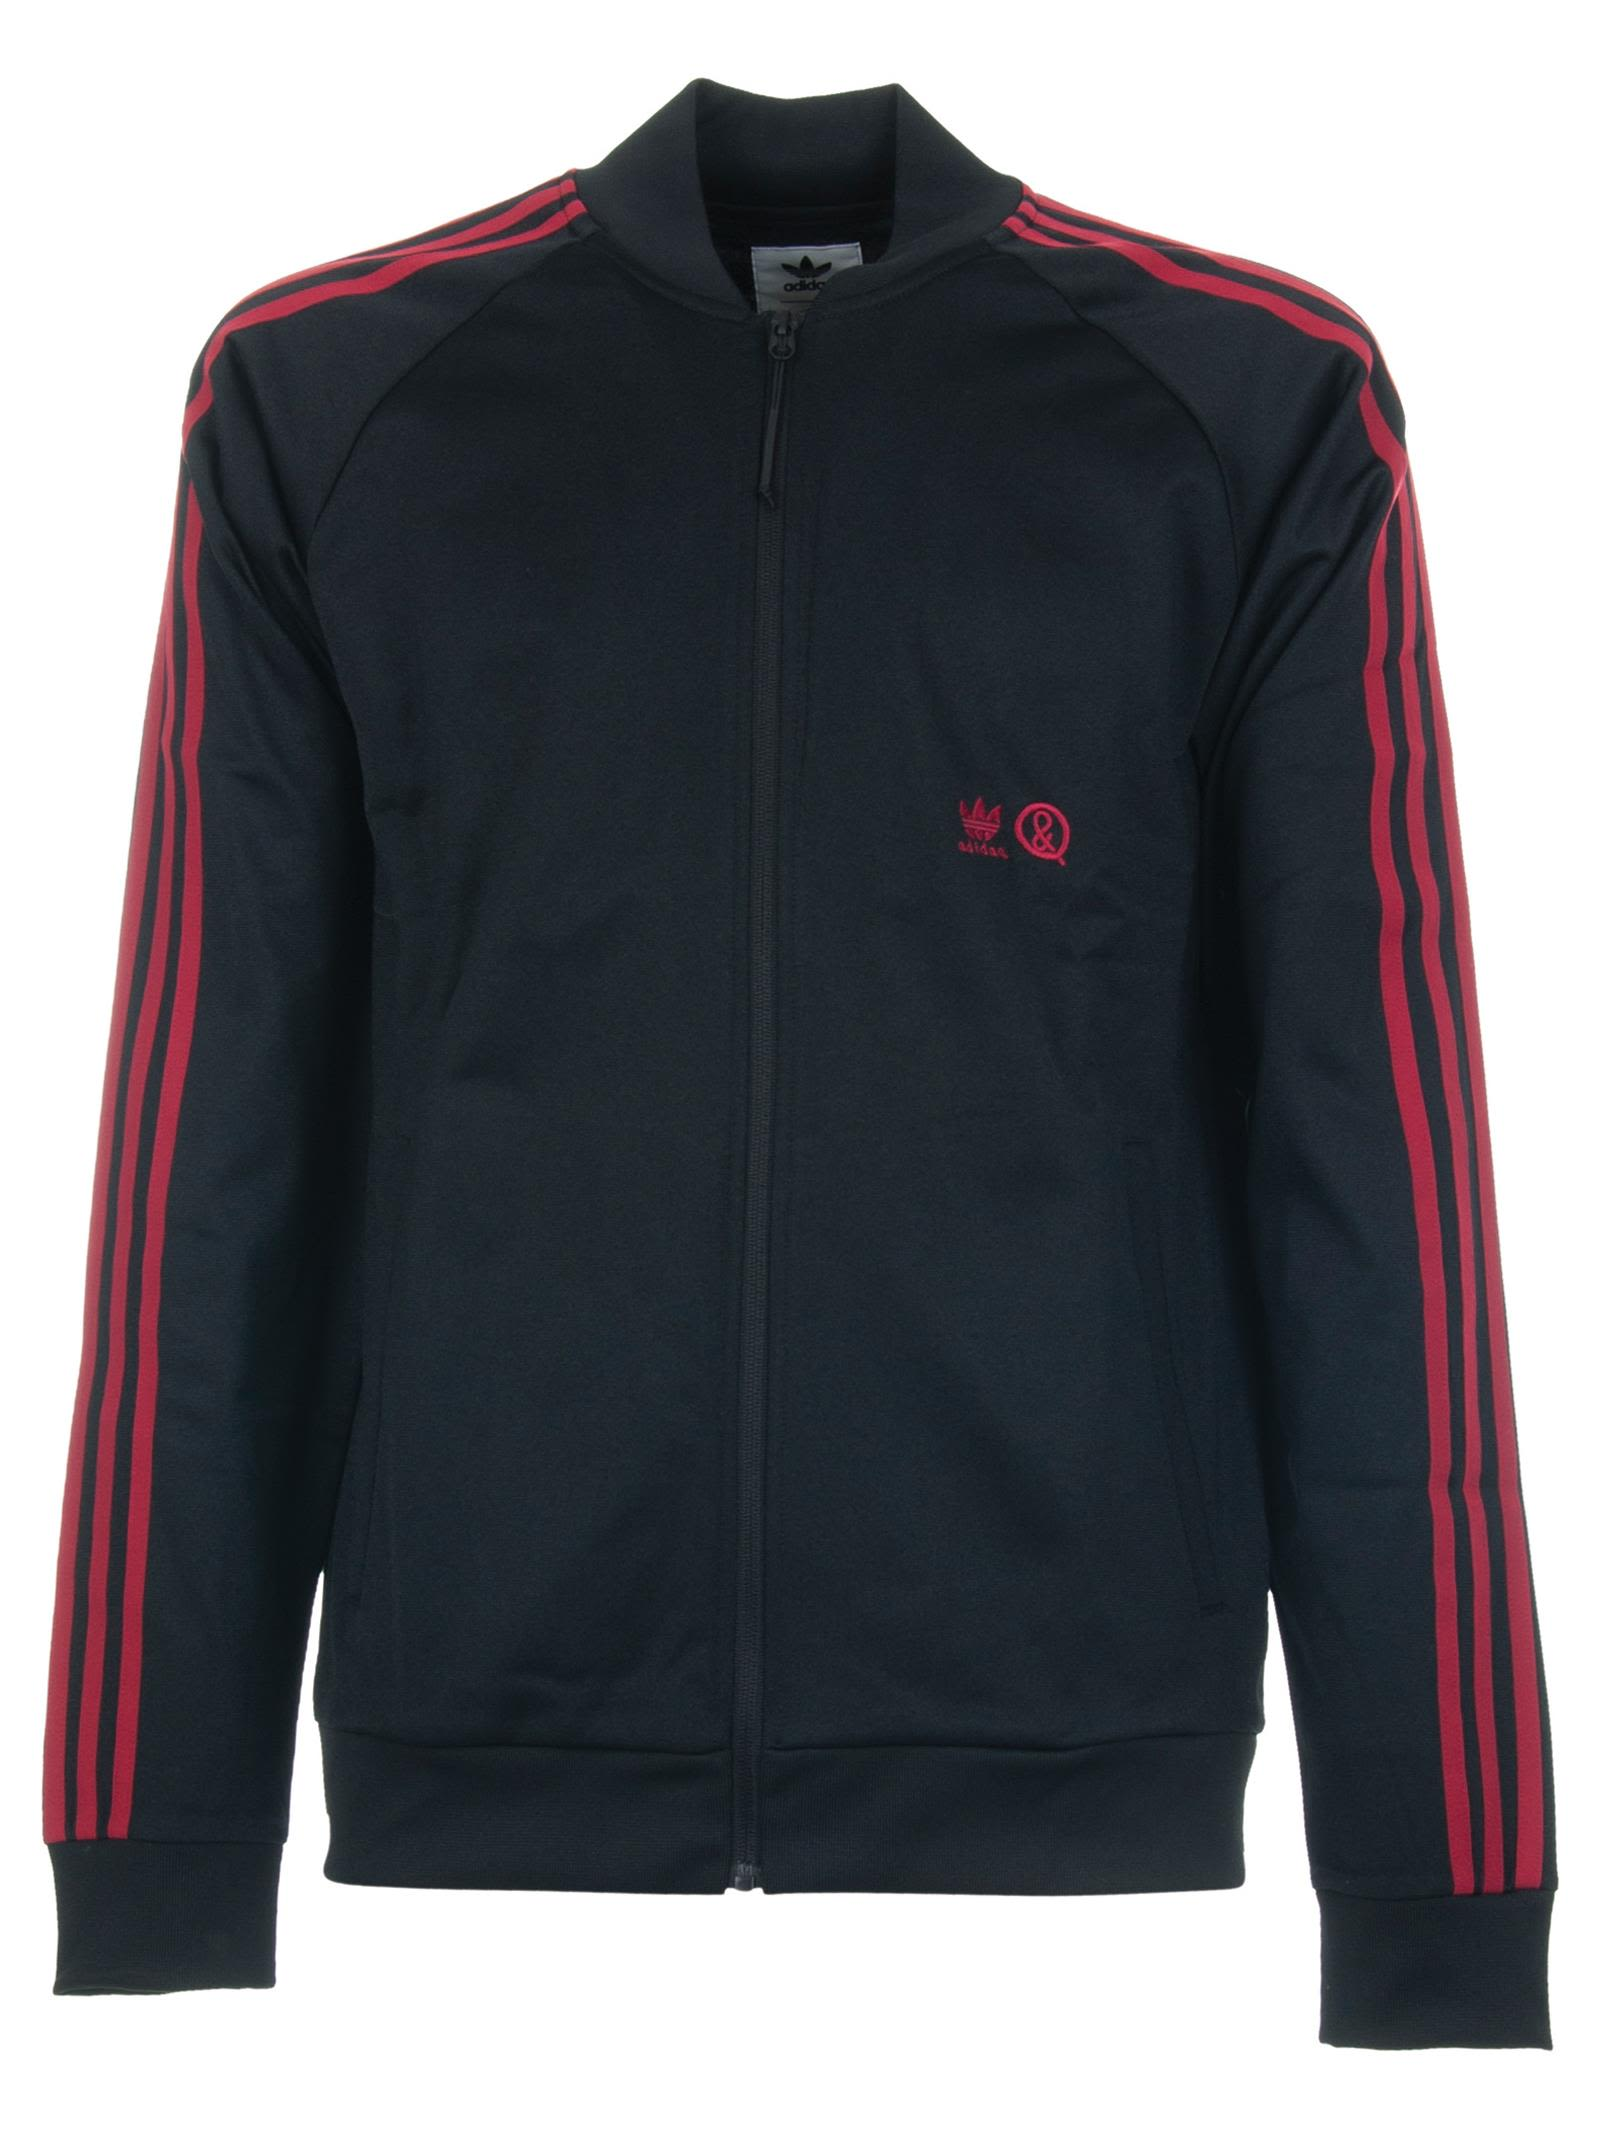 ADIDAS ORIGINALS BY UNITED ARROWS & SONS Adidas X United Arrows & Sons Track Jacket in Nero/Rosso